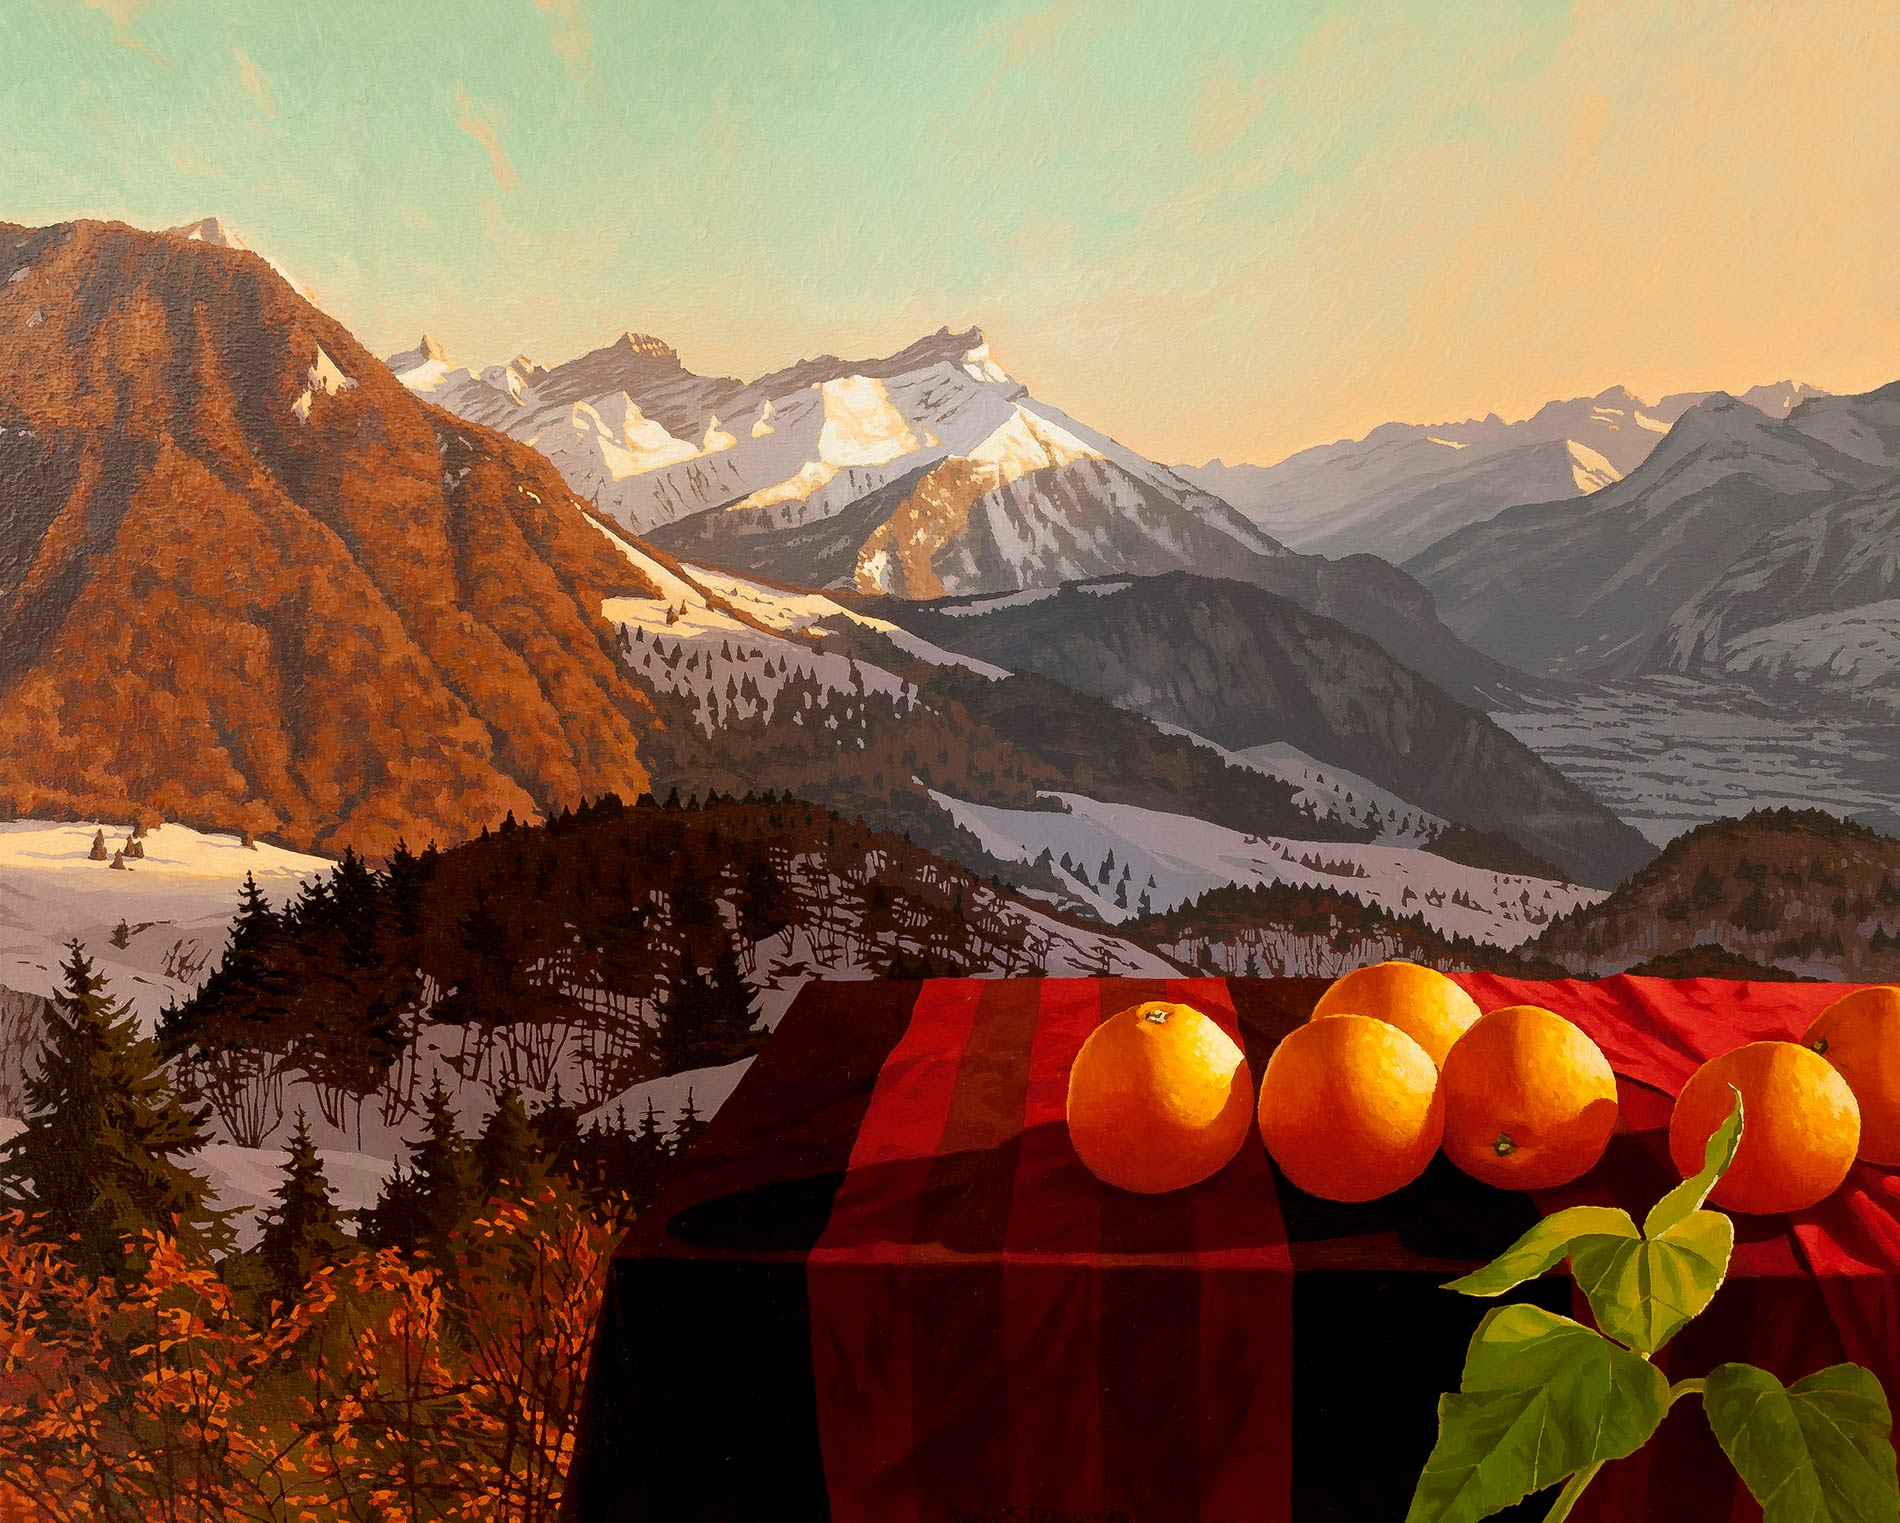 Oranges and the Alps seen from Leysin